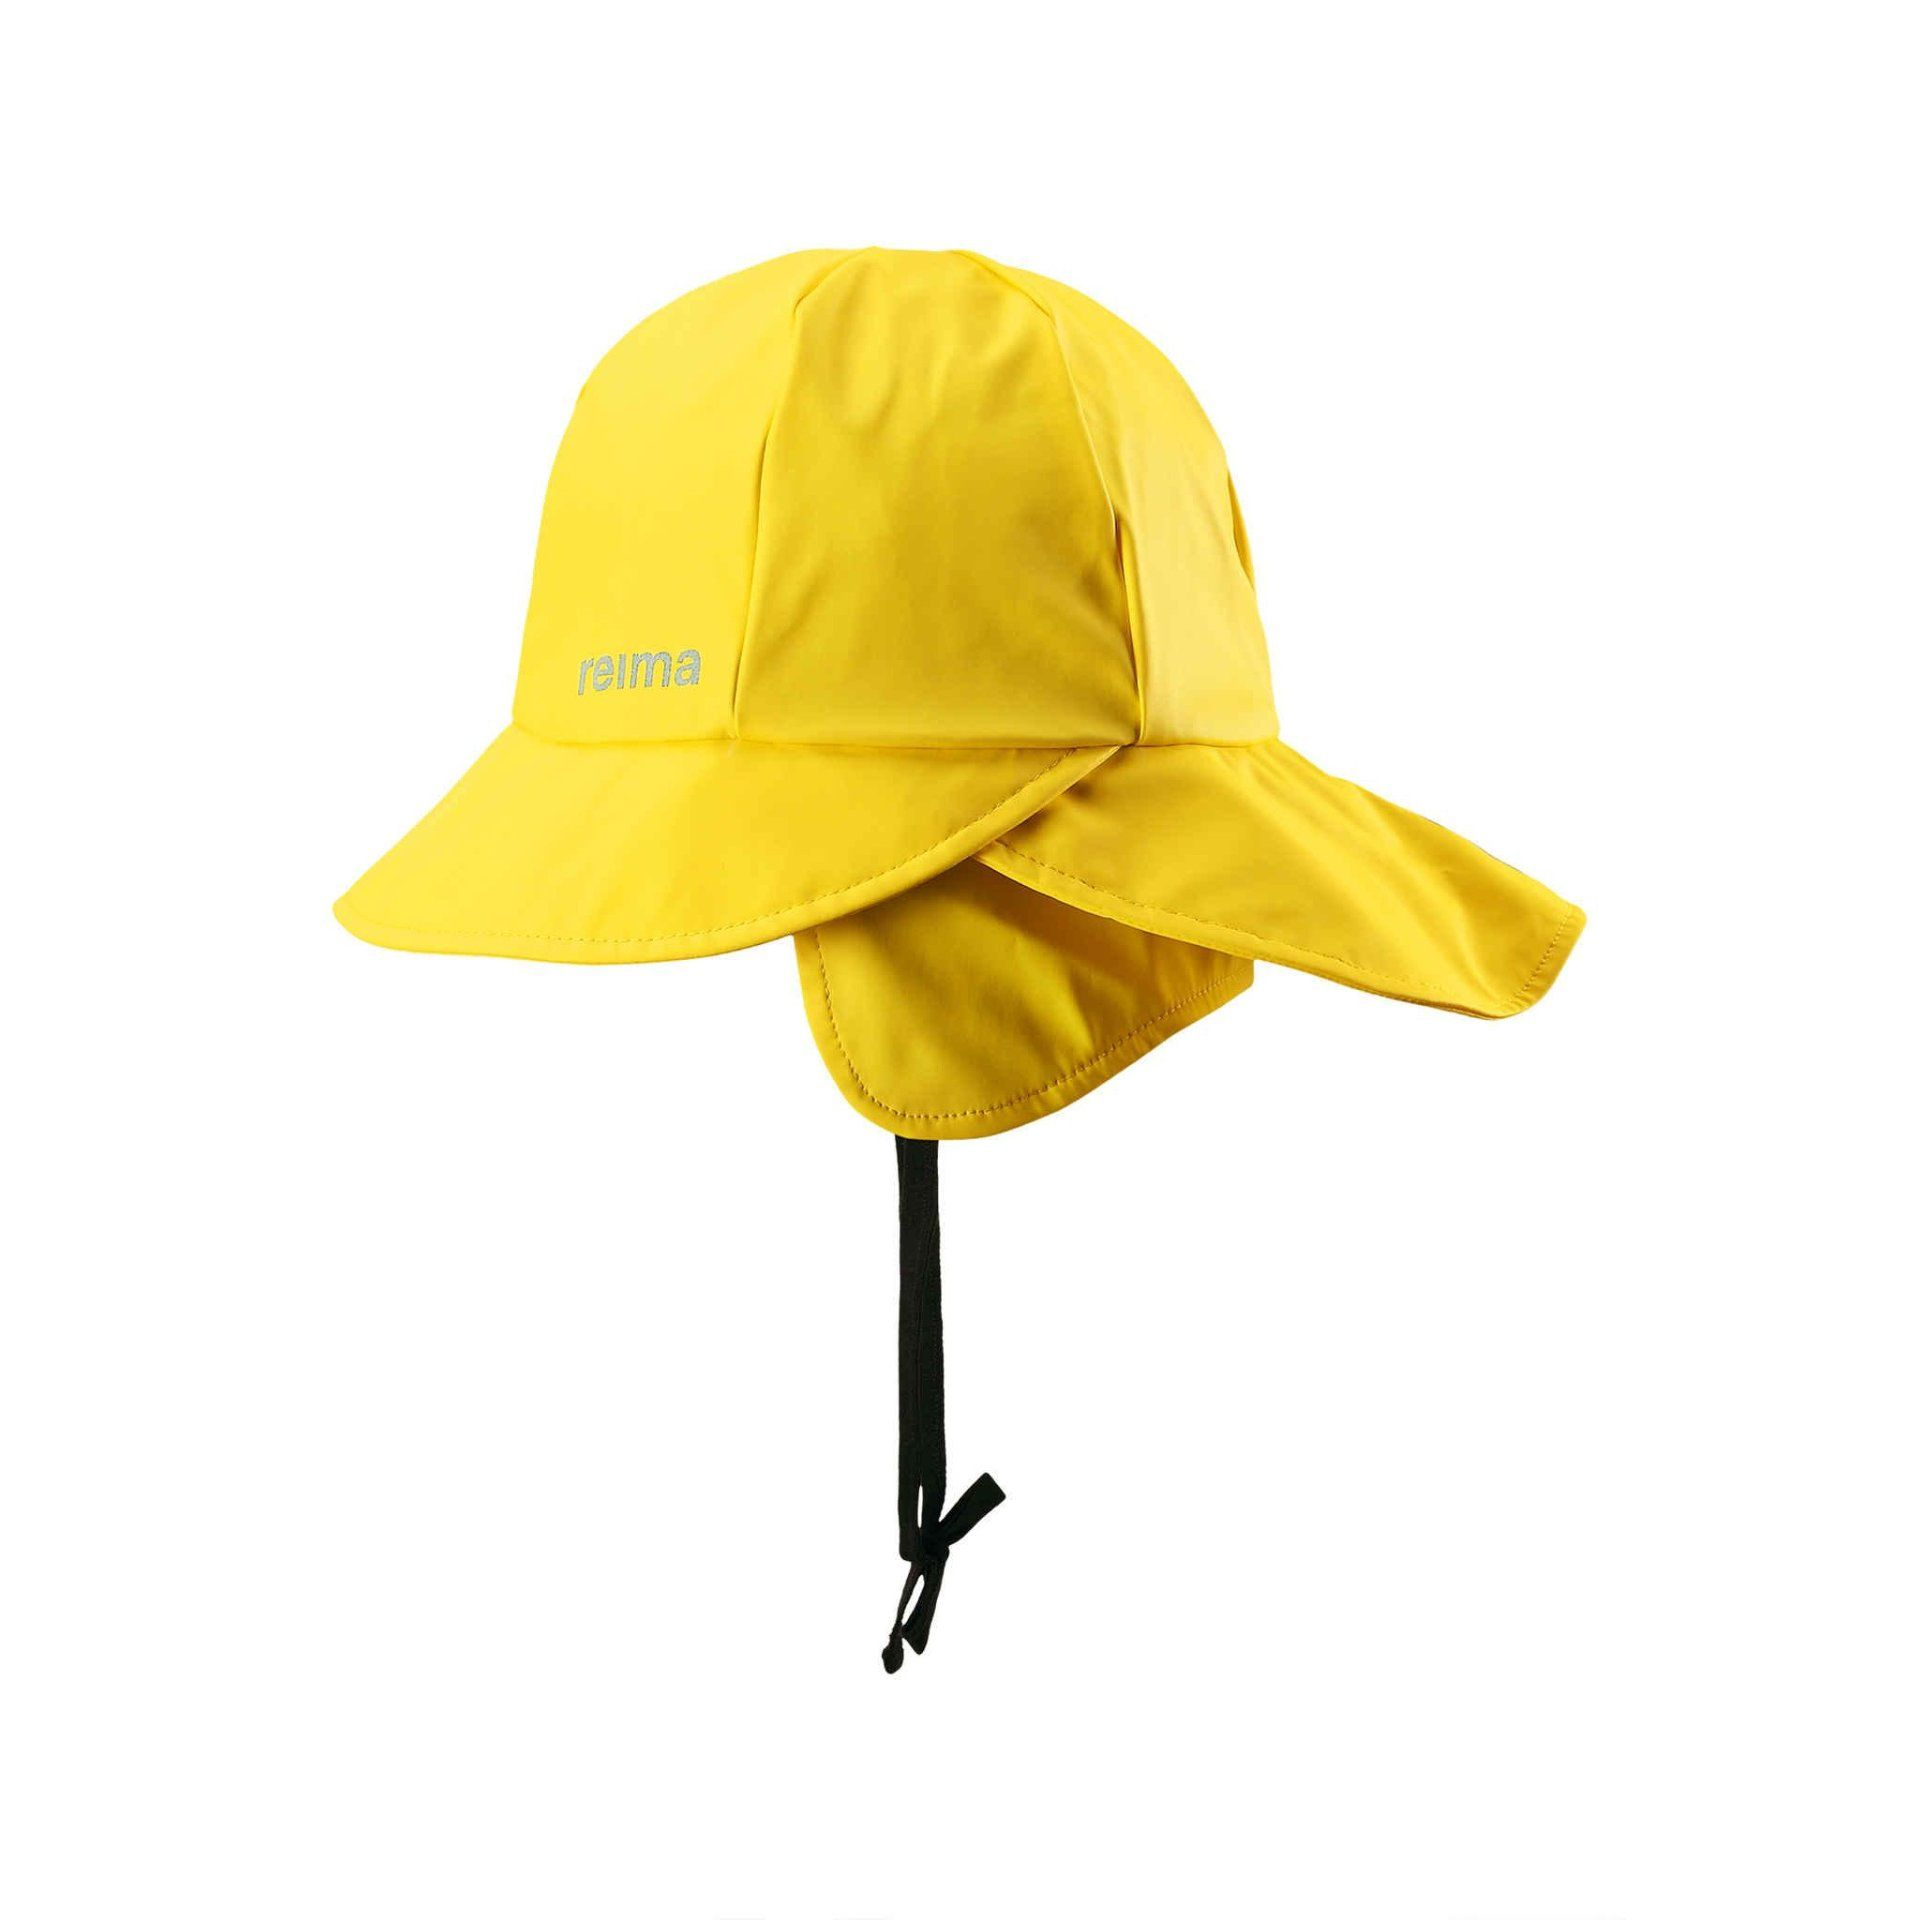 KAPELUSZ REIMA RAINY 528409-2350 YELLOW BOK